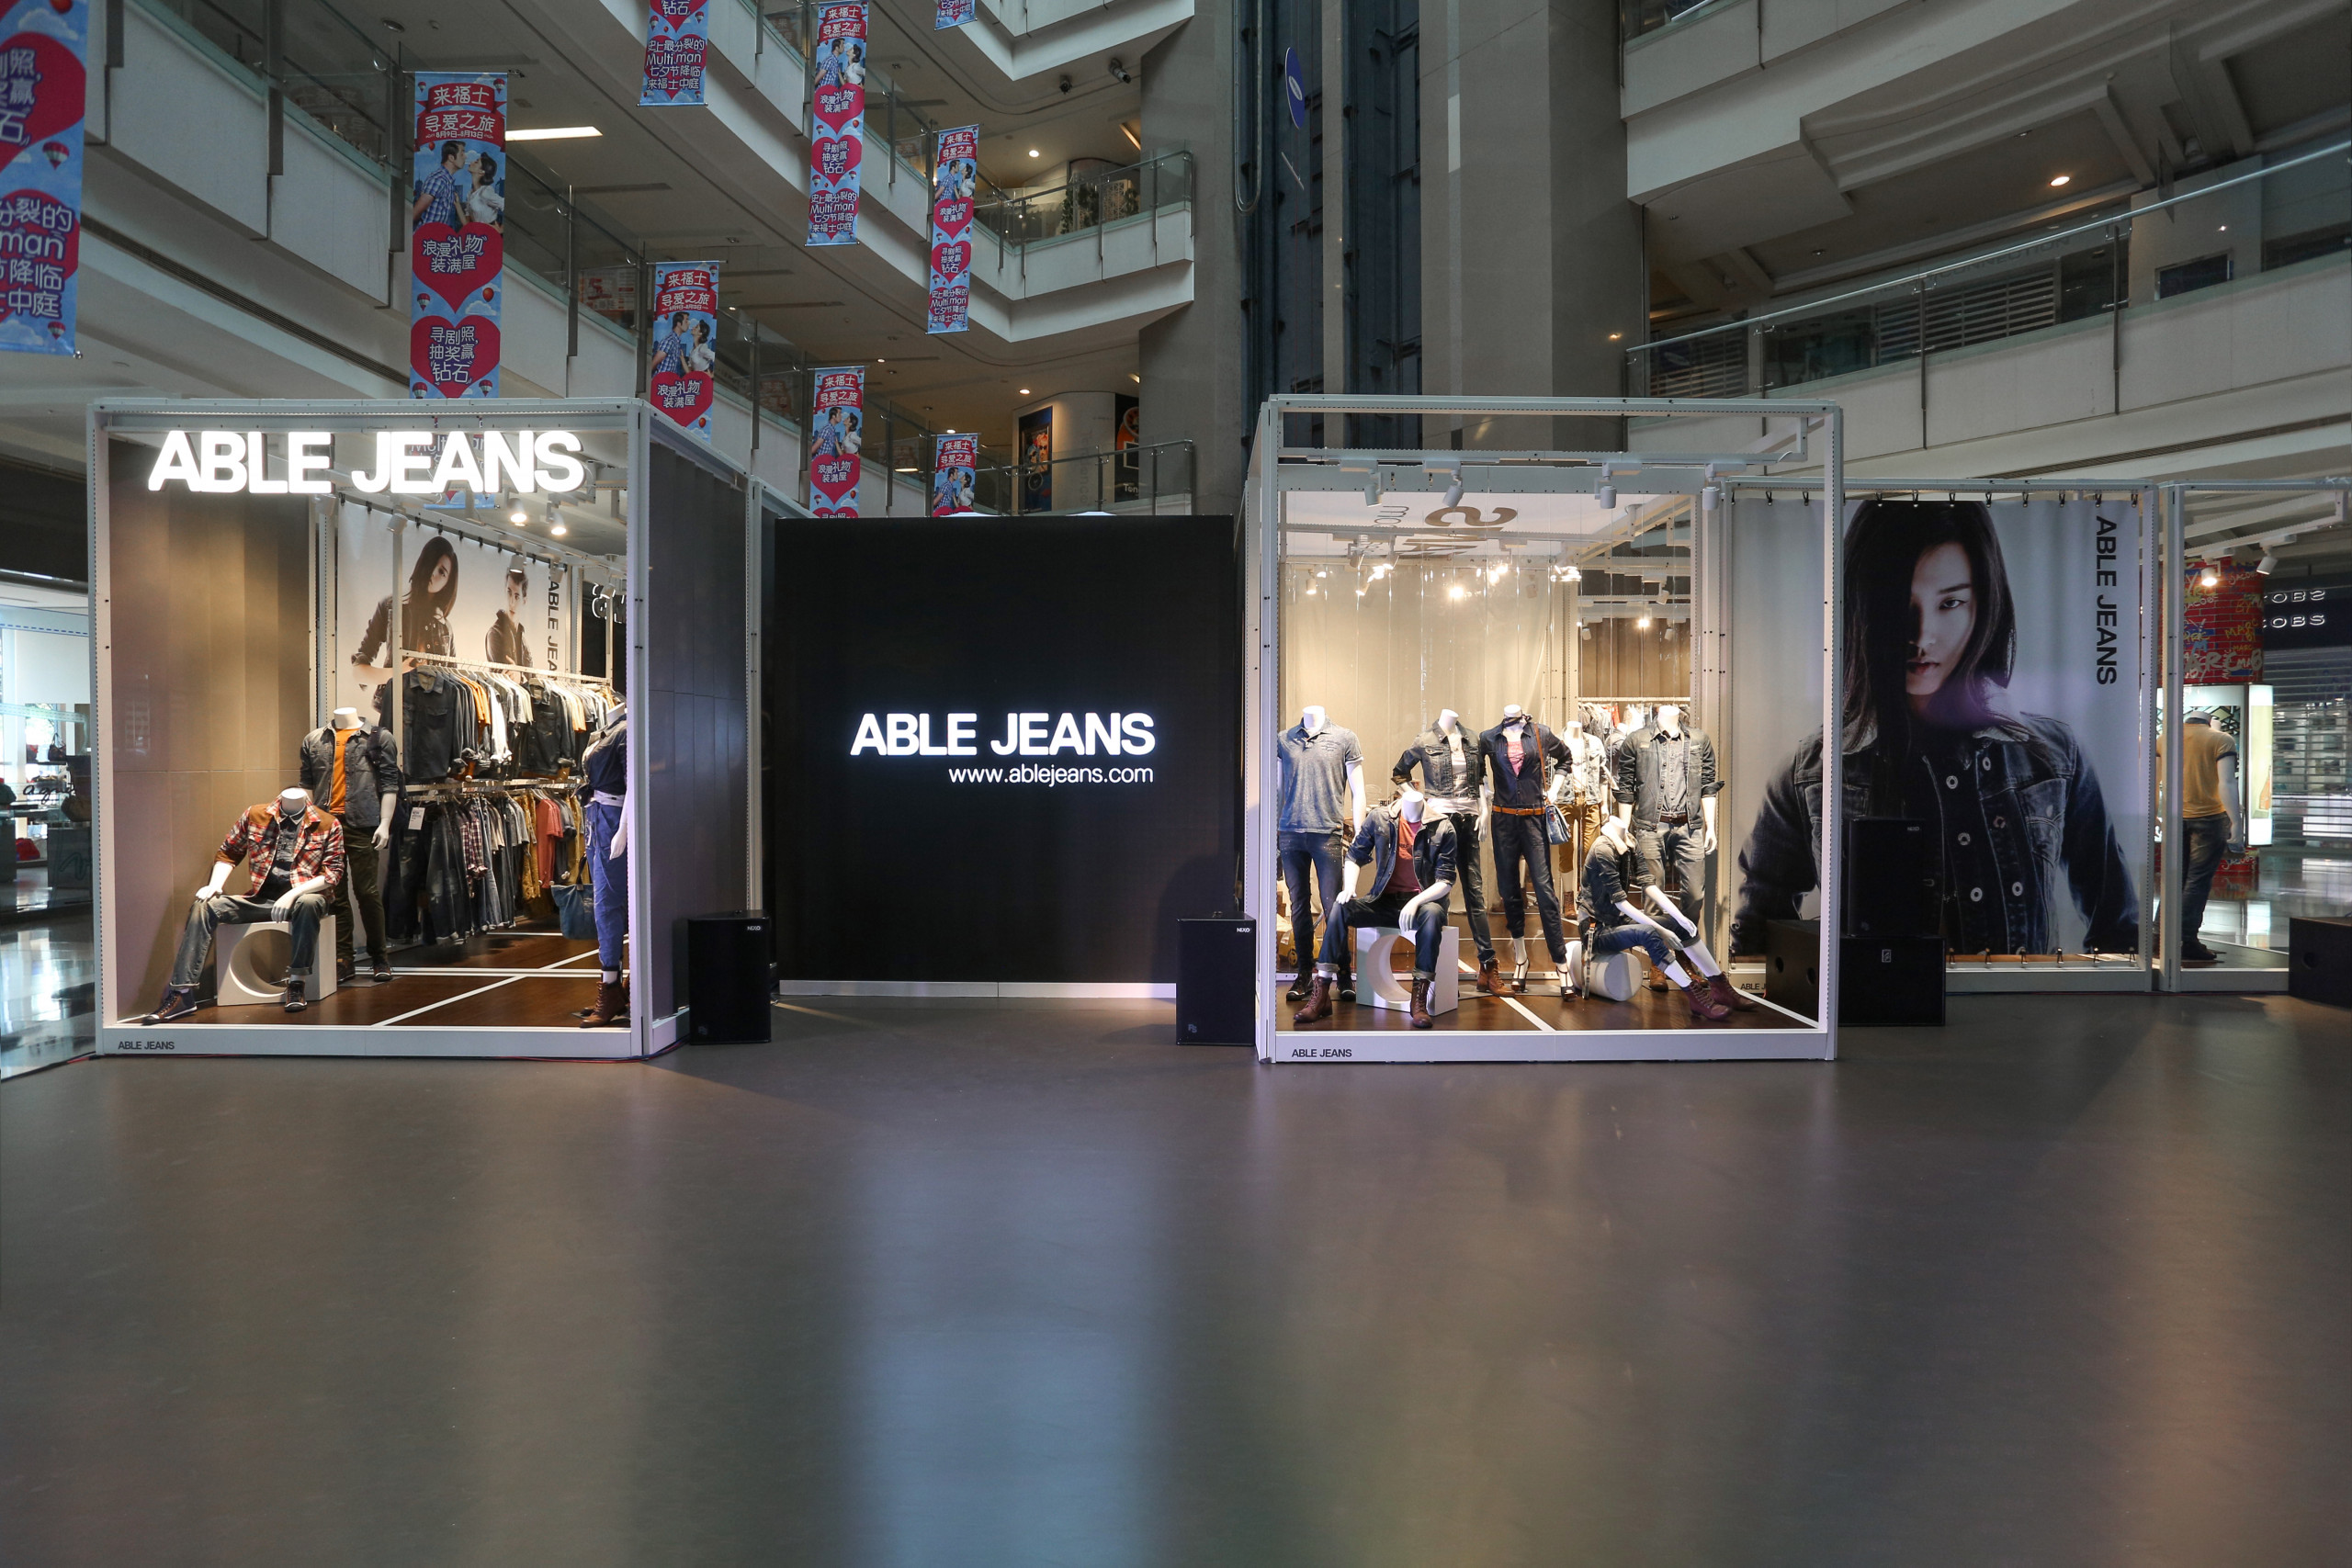 Able jeans pop-up Shanghai booth